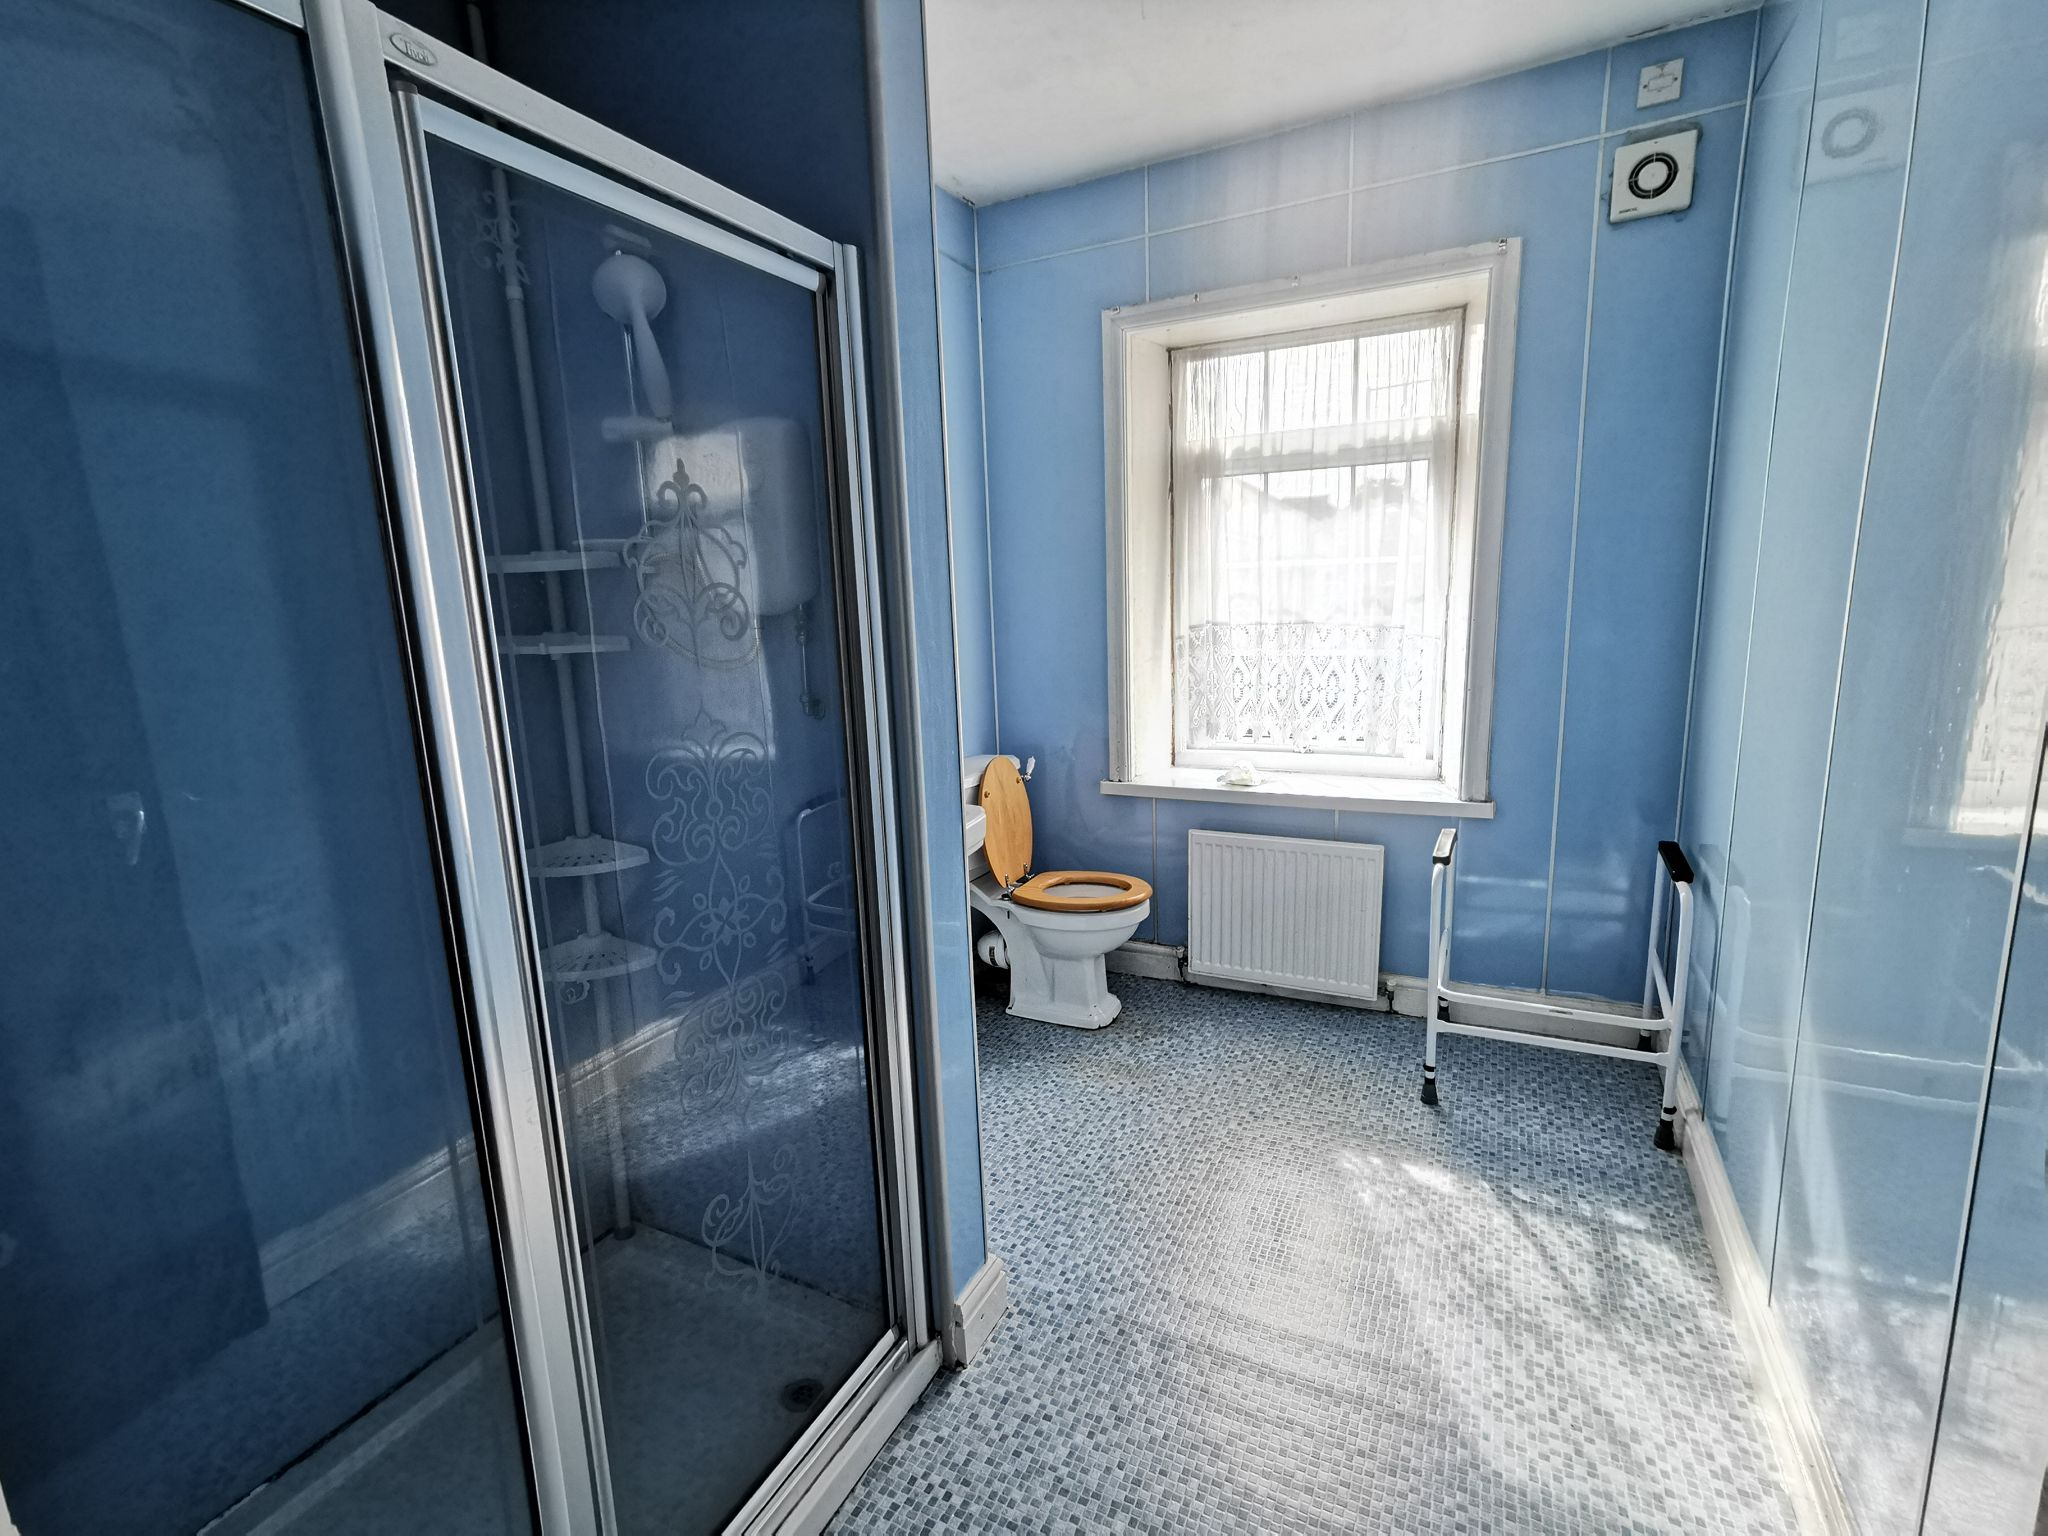 3 bedroom detached house For Sale in Bradford - Photograph 14.